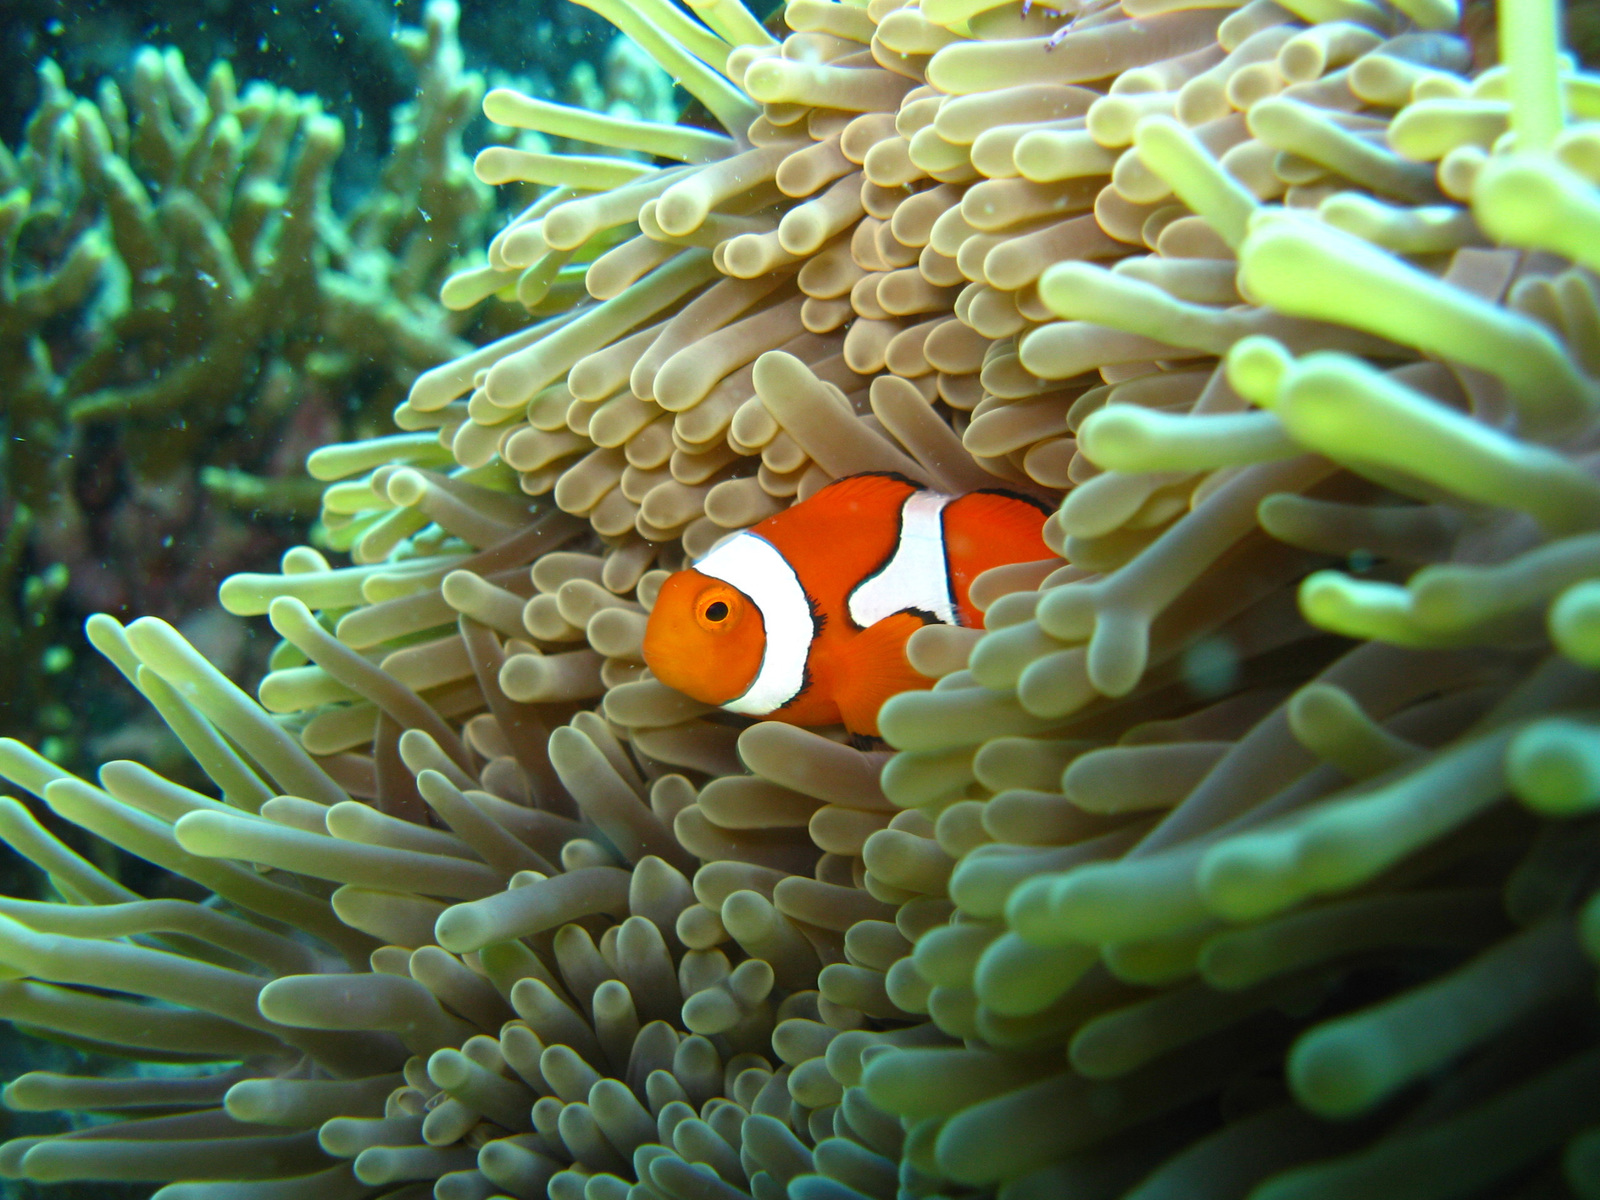 An orange clownfish within its home anemone in Kimbe Bay off the coast of New Britain, Papua New Guinea. Photo by Vanessa Messmer.